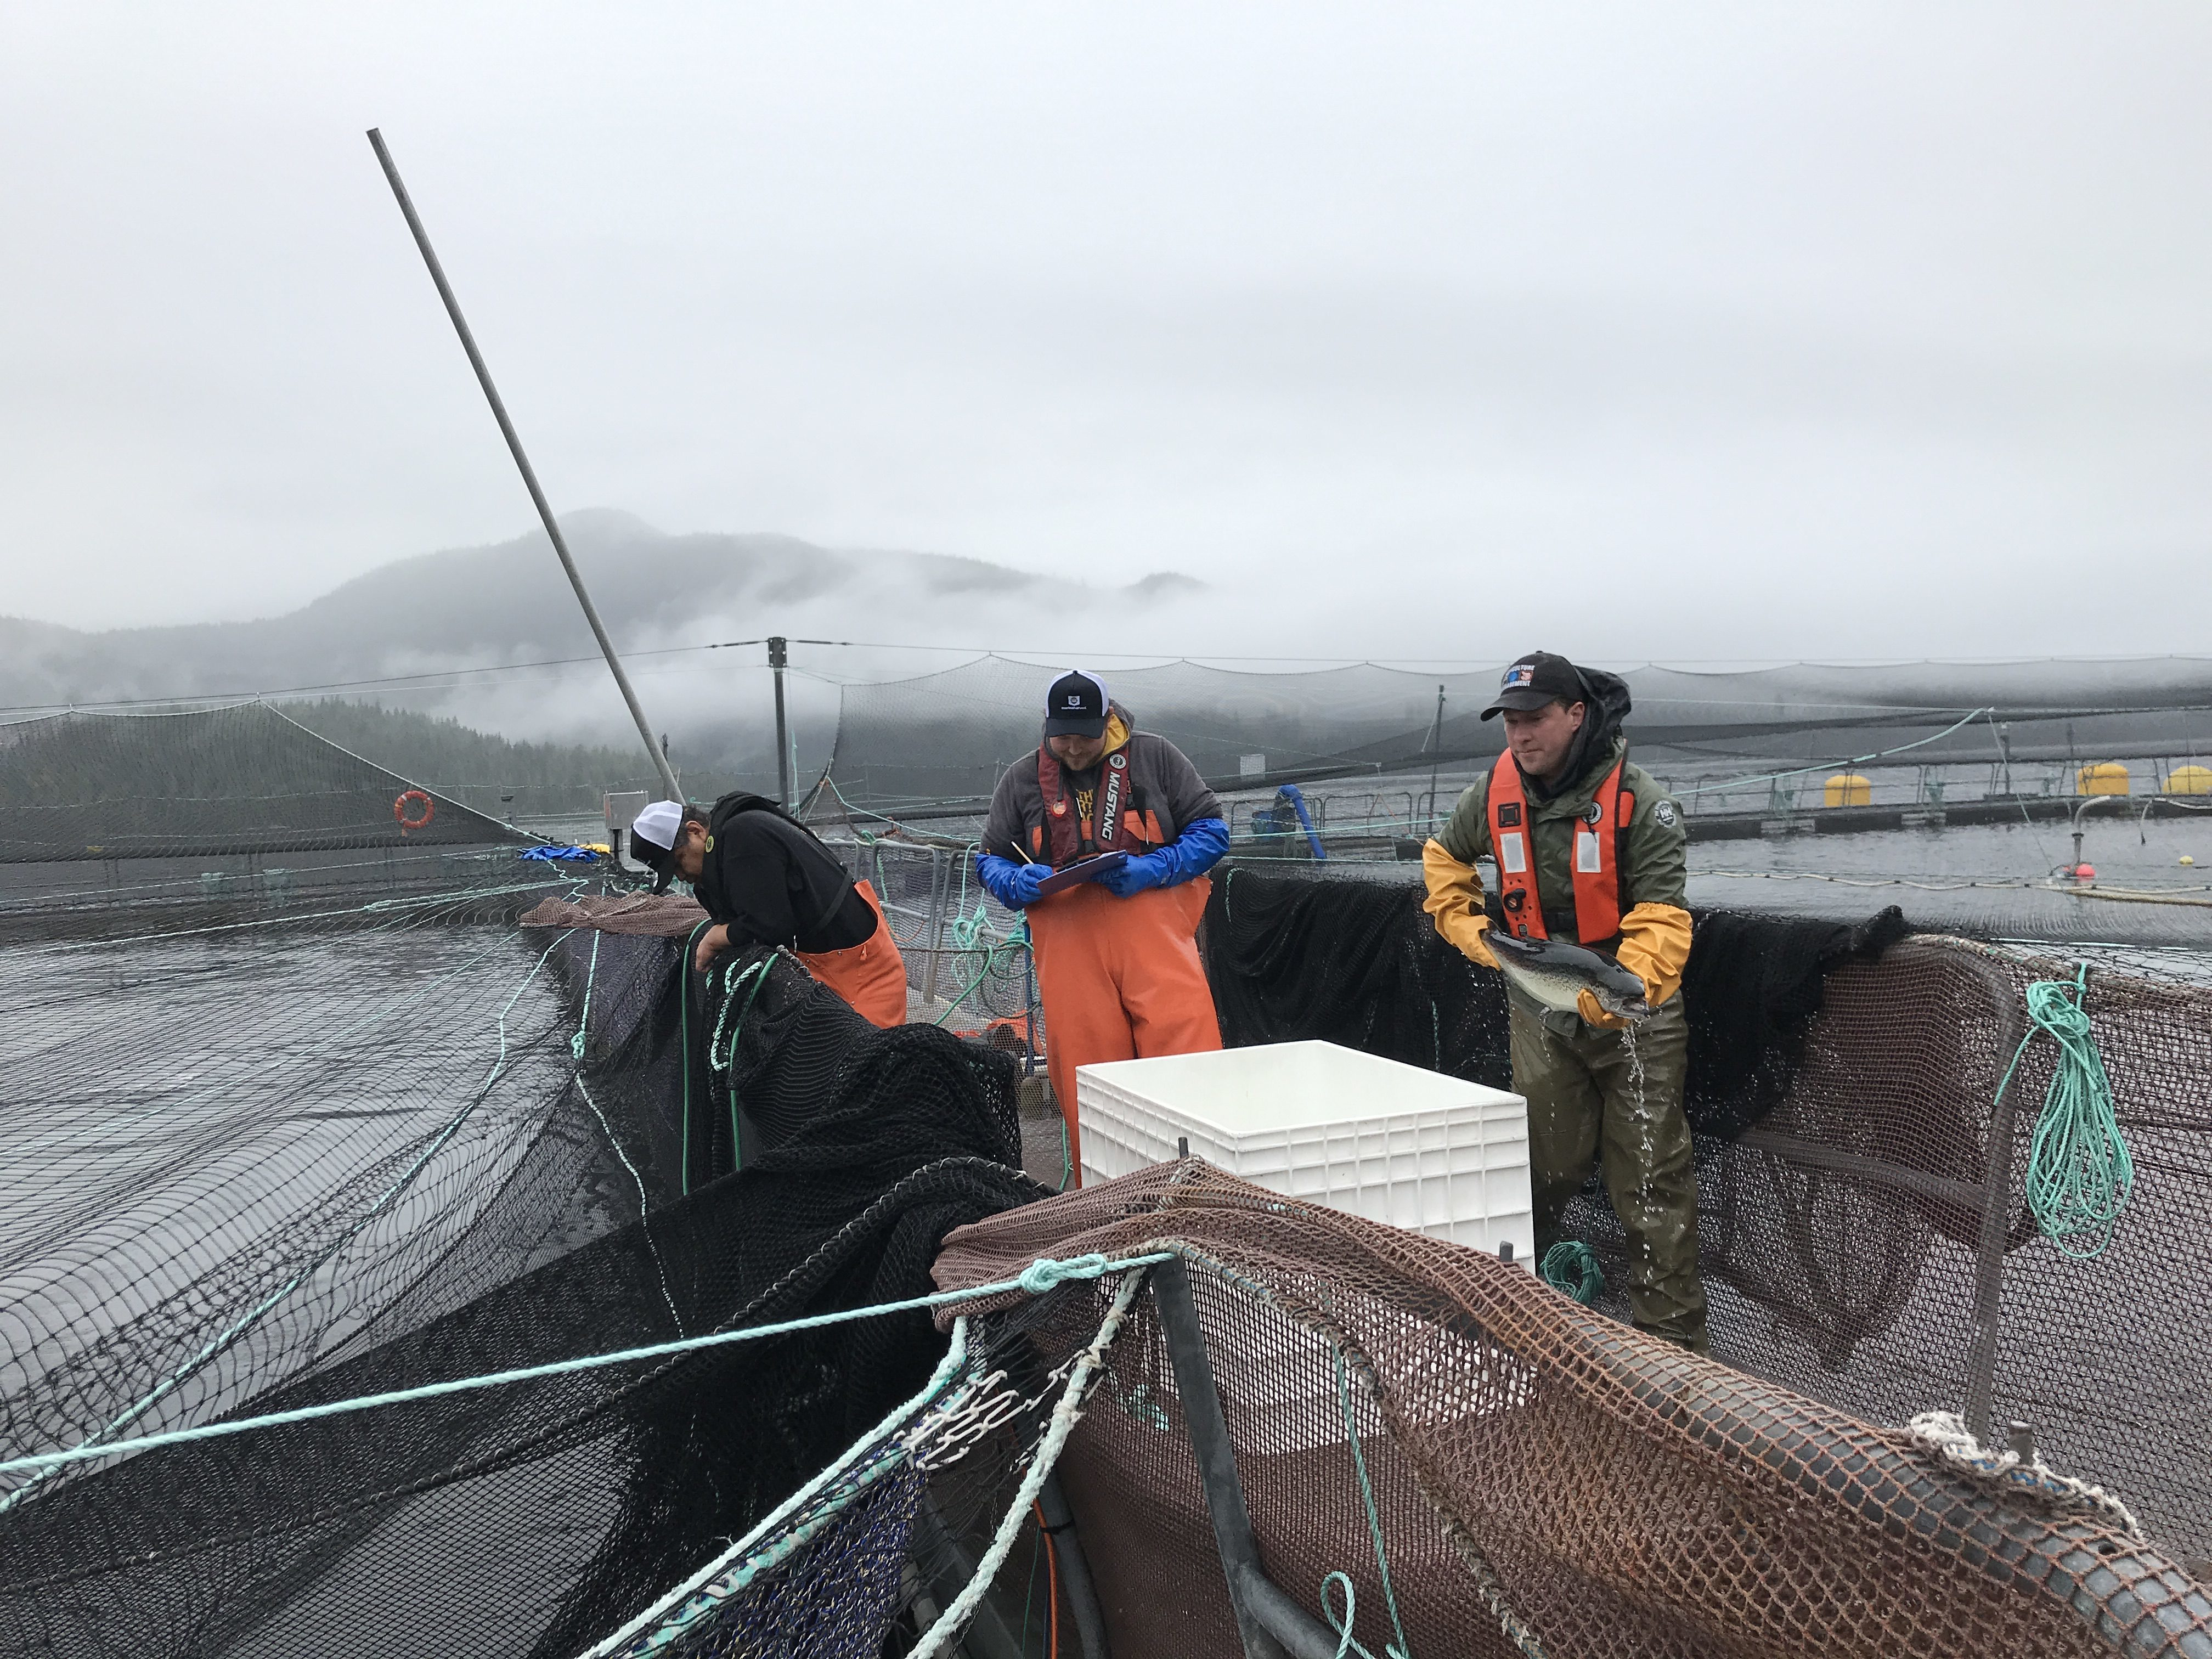 No sea lice is found on this fish during a routine health audit at a B.C. fish farm (Megan Thomas/CBC)